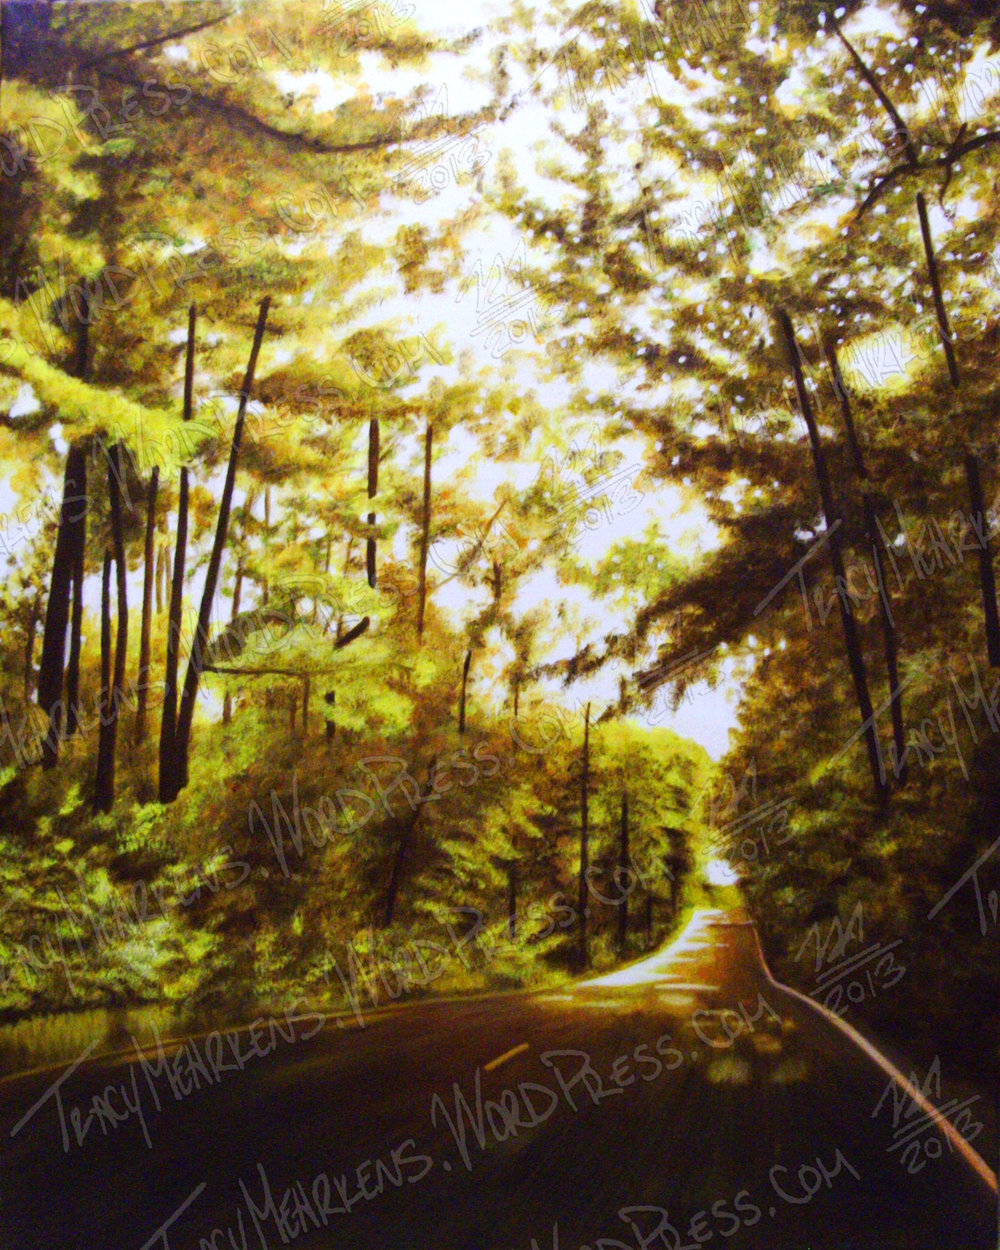 The Hallowed Road. Oil on Canvas. 24x30 in. 2013.